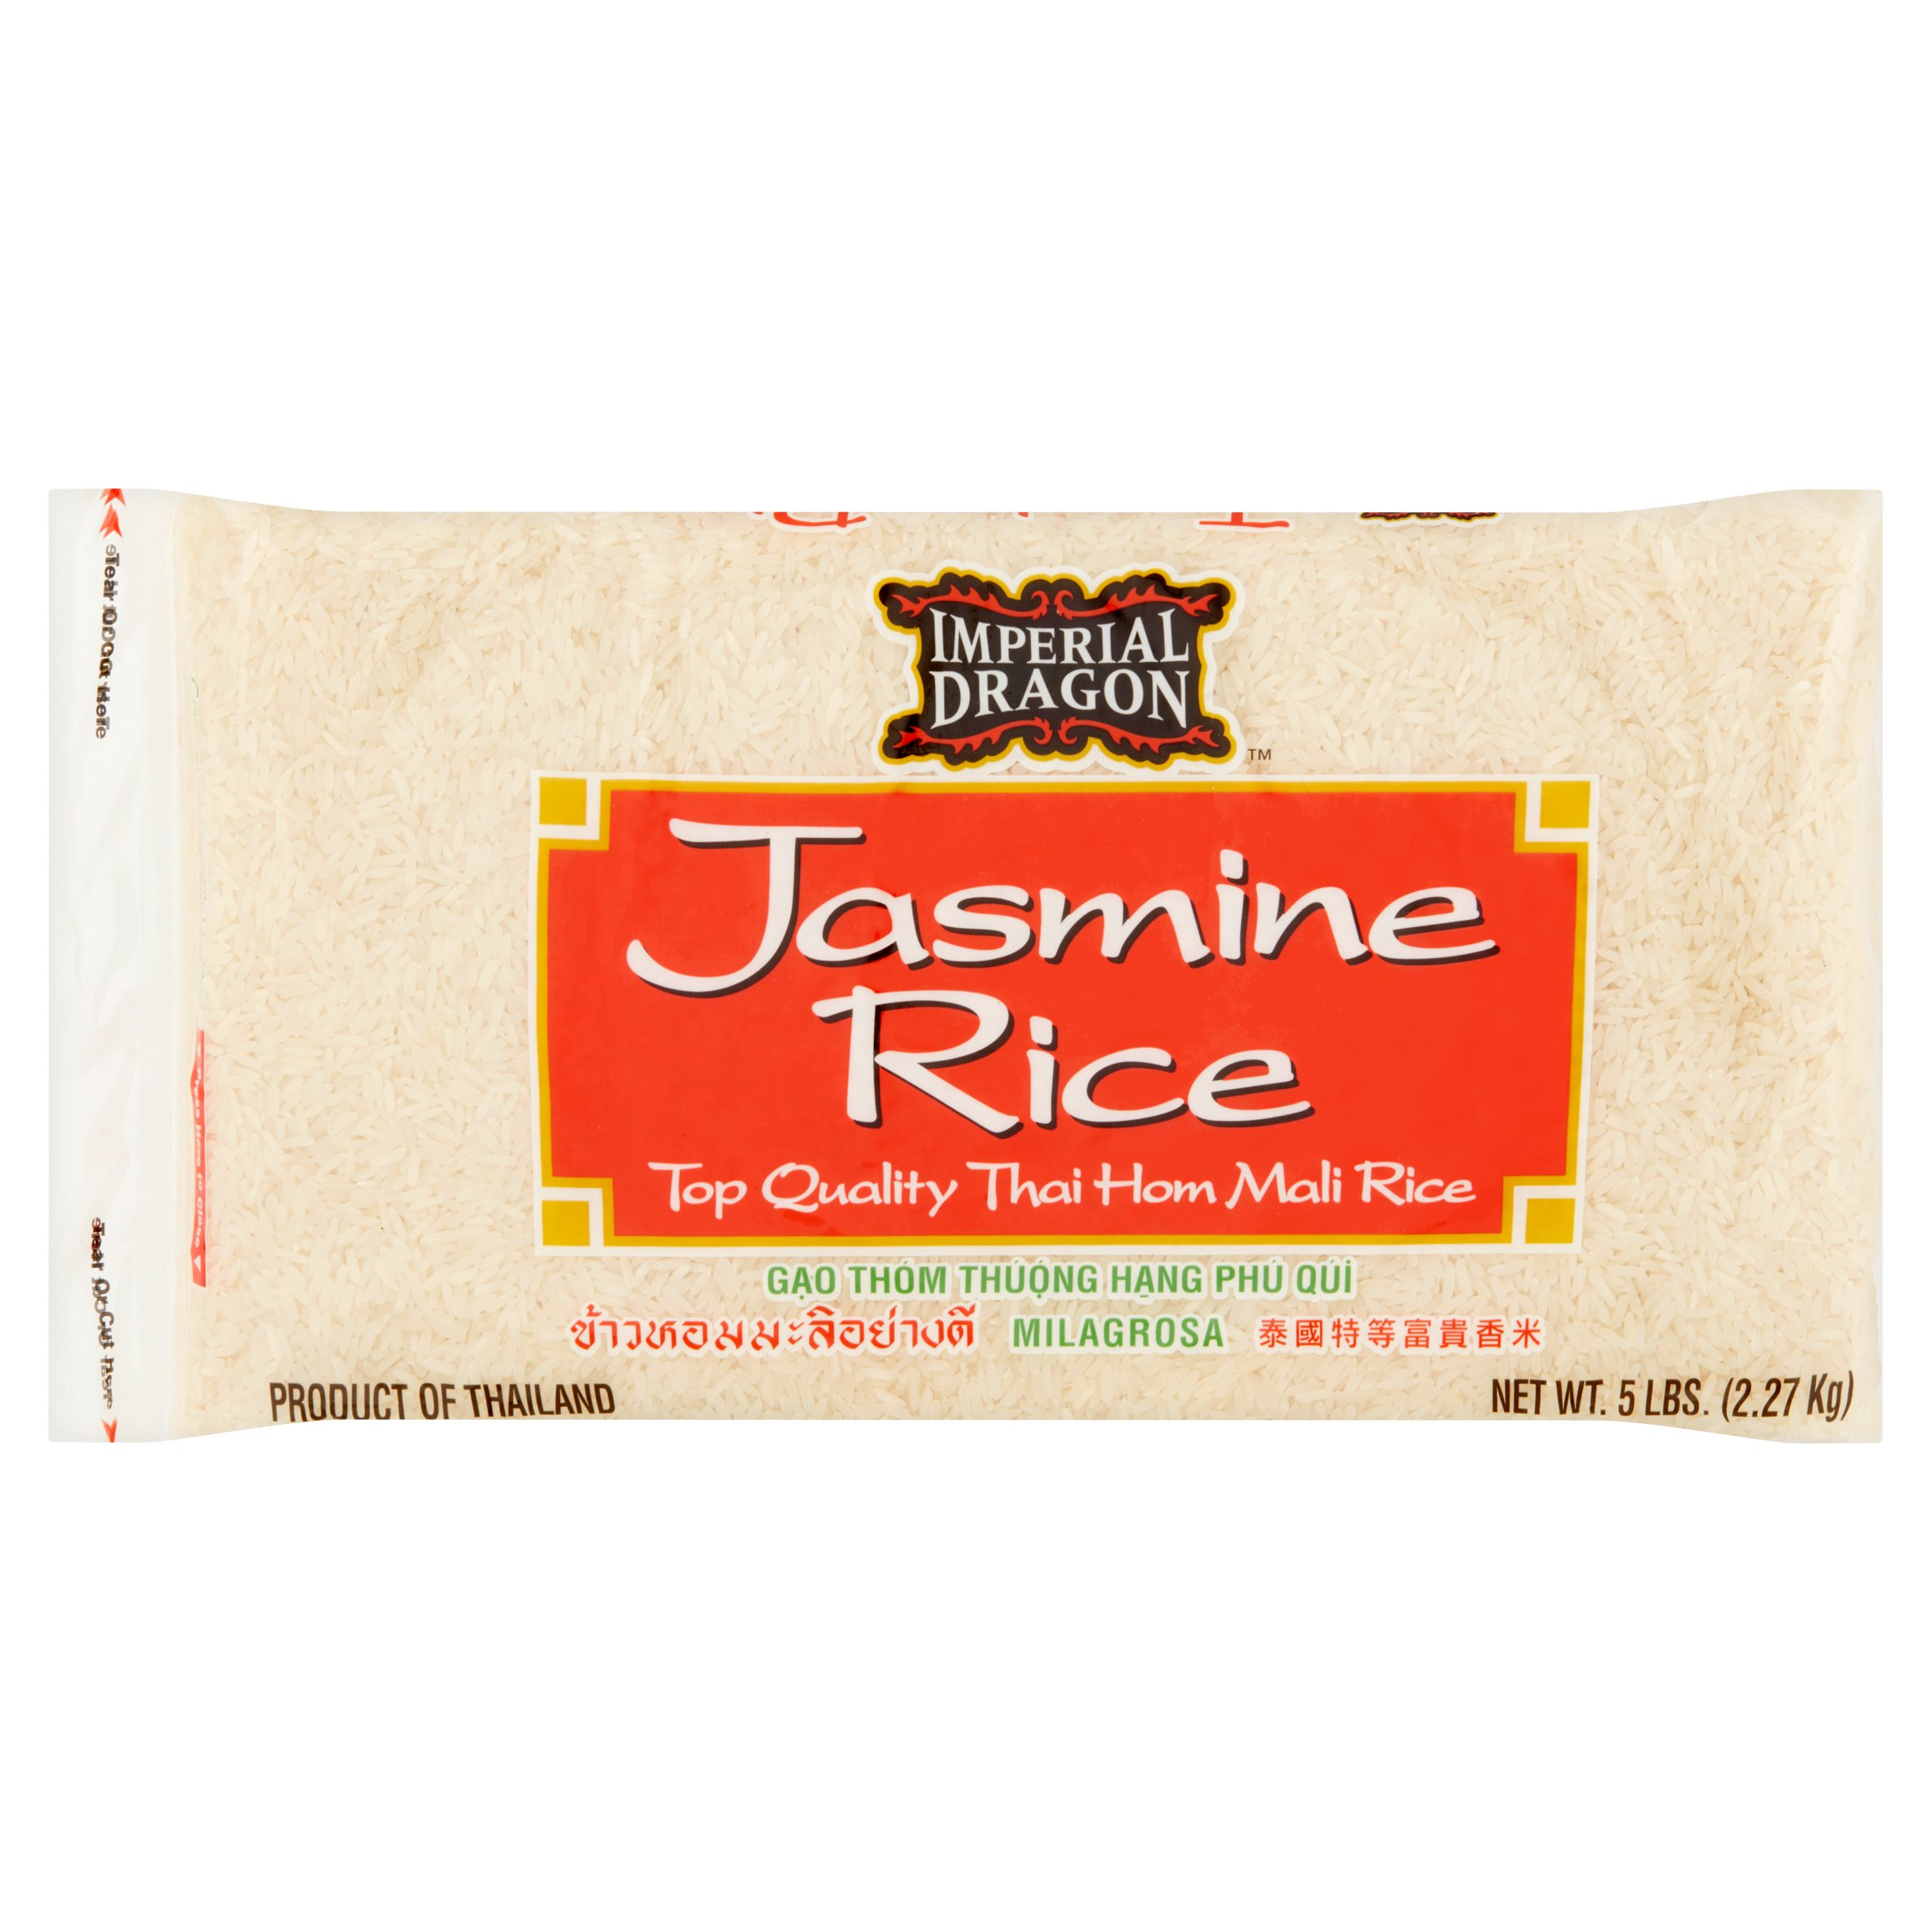 Imperial Dragon Jasmine Rice, 5 lb by Imperial Dragon Jasmine Rice Recipes